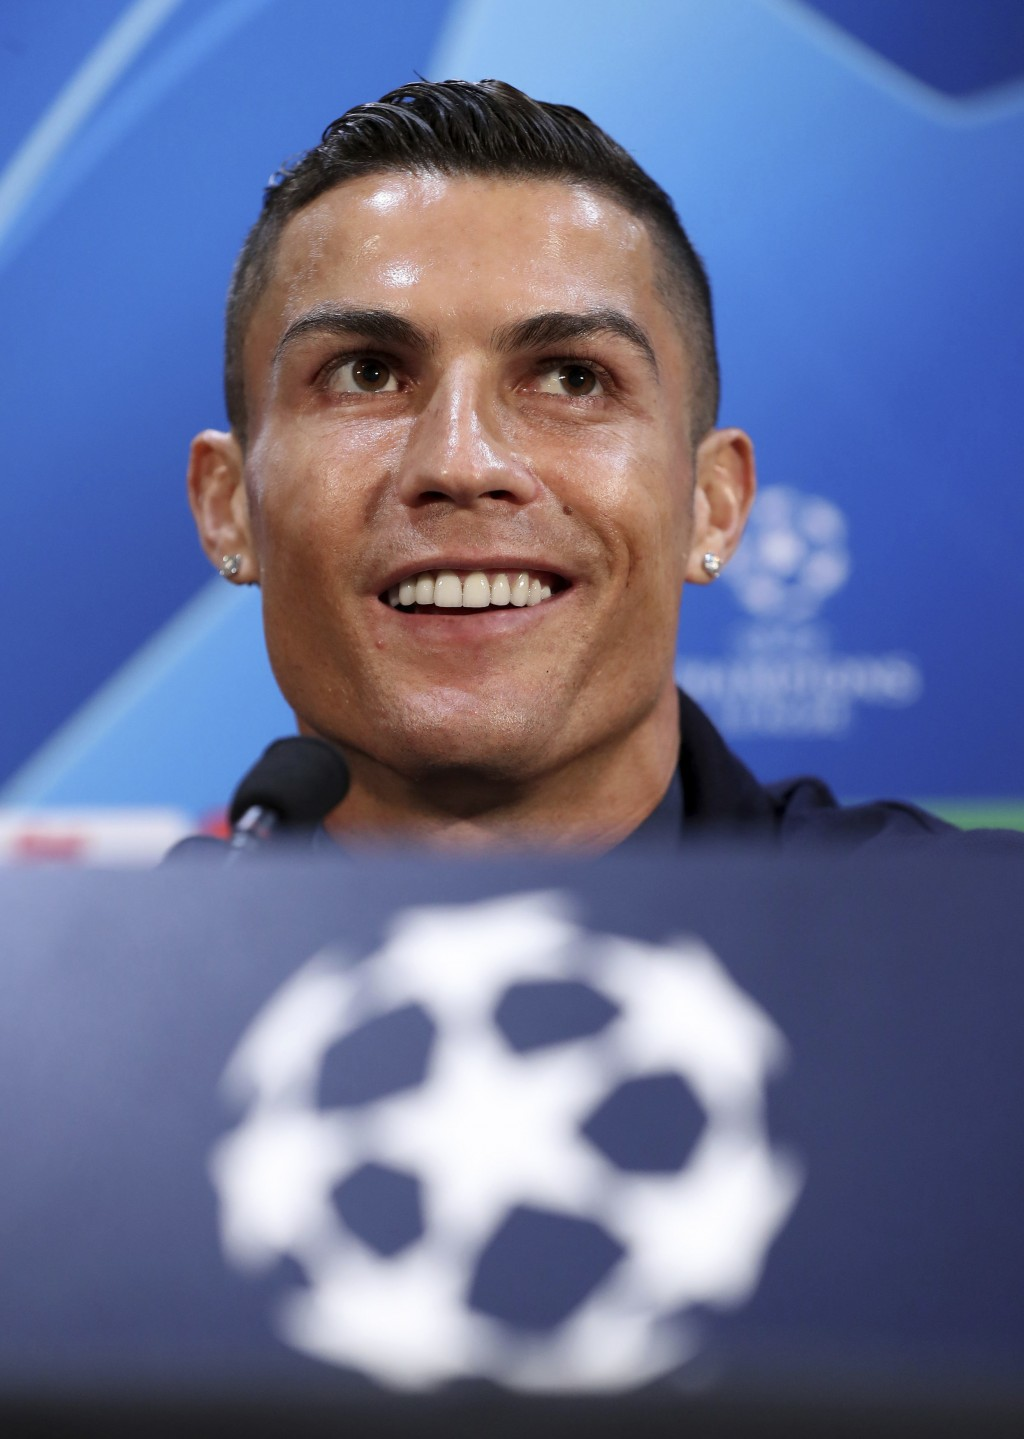 Juventus' Cristiano Ronaldo attends a press conference at Old Trafford, Manchester, England, Monday, Oct. 22, 2018. Juventus will play a Champions Lea...